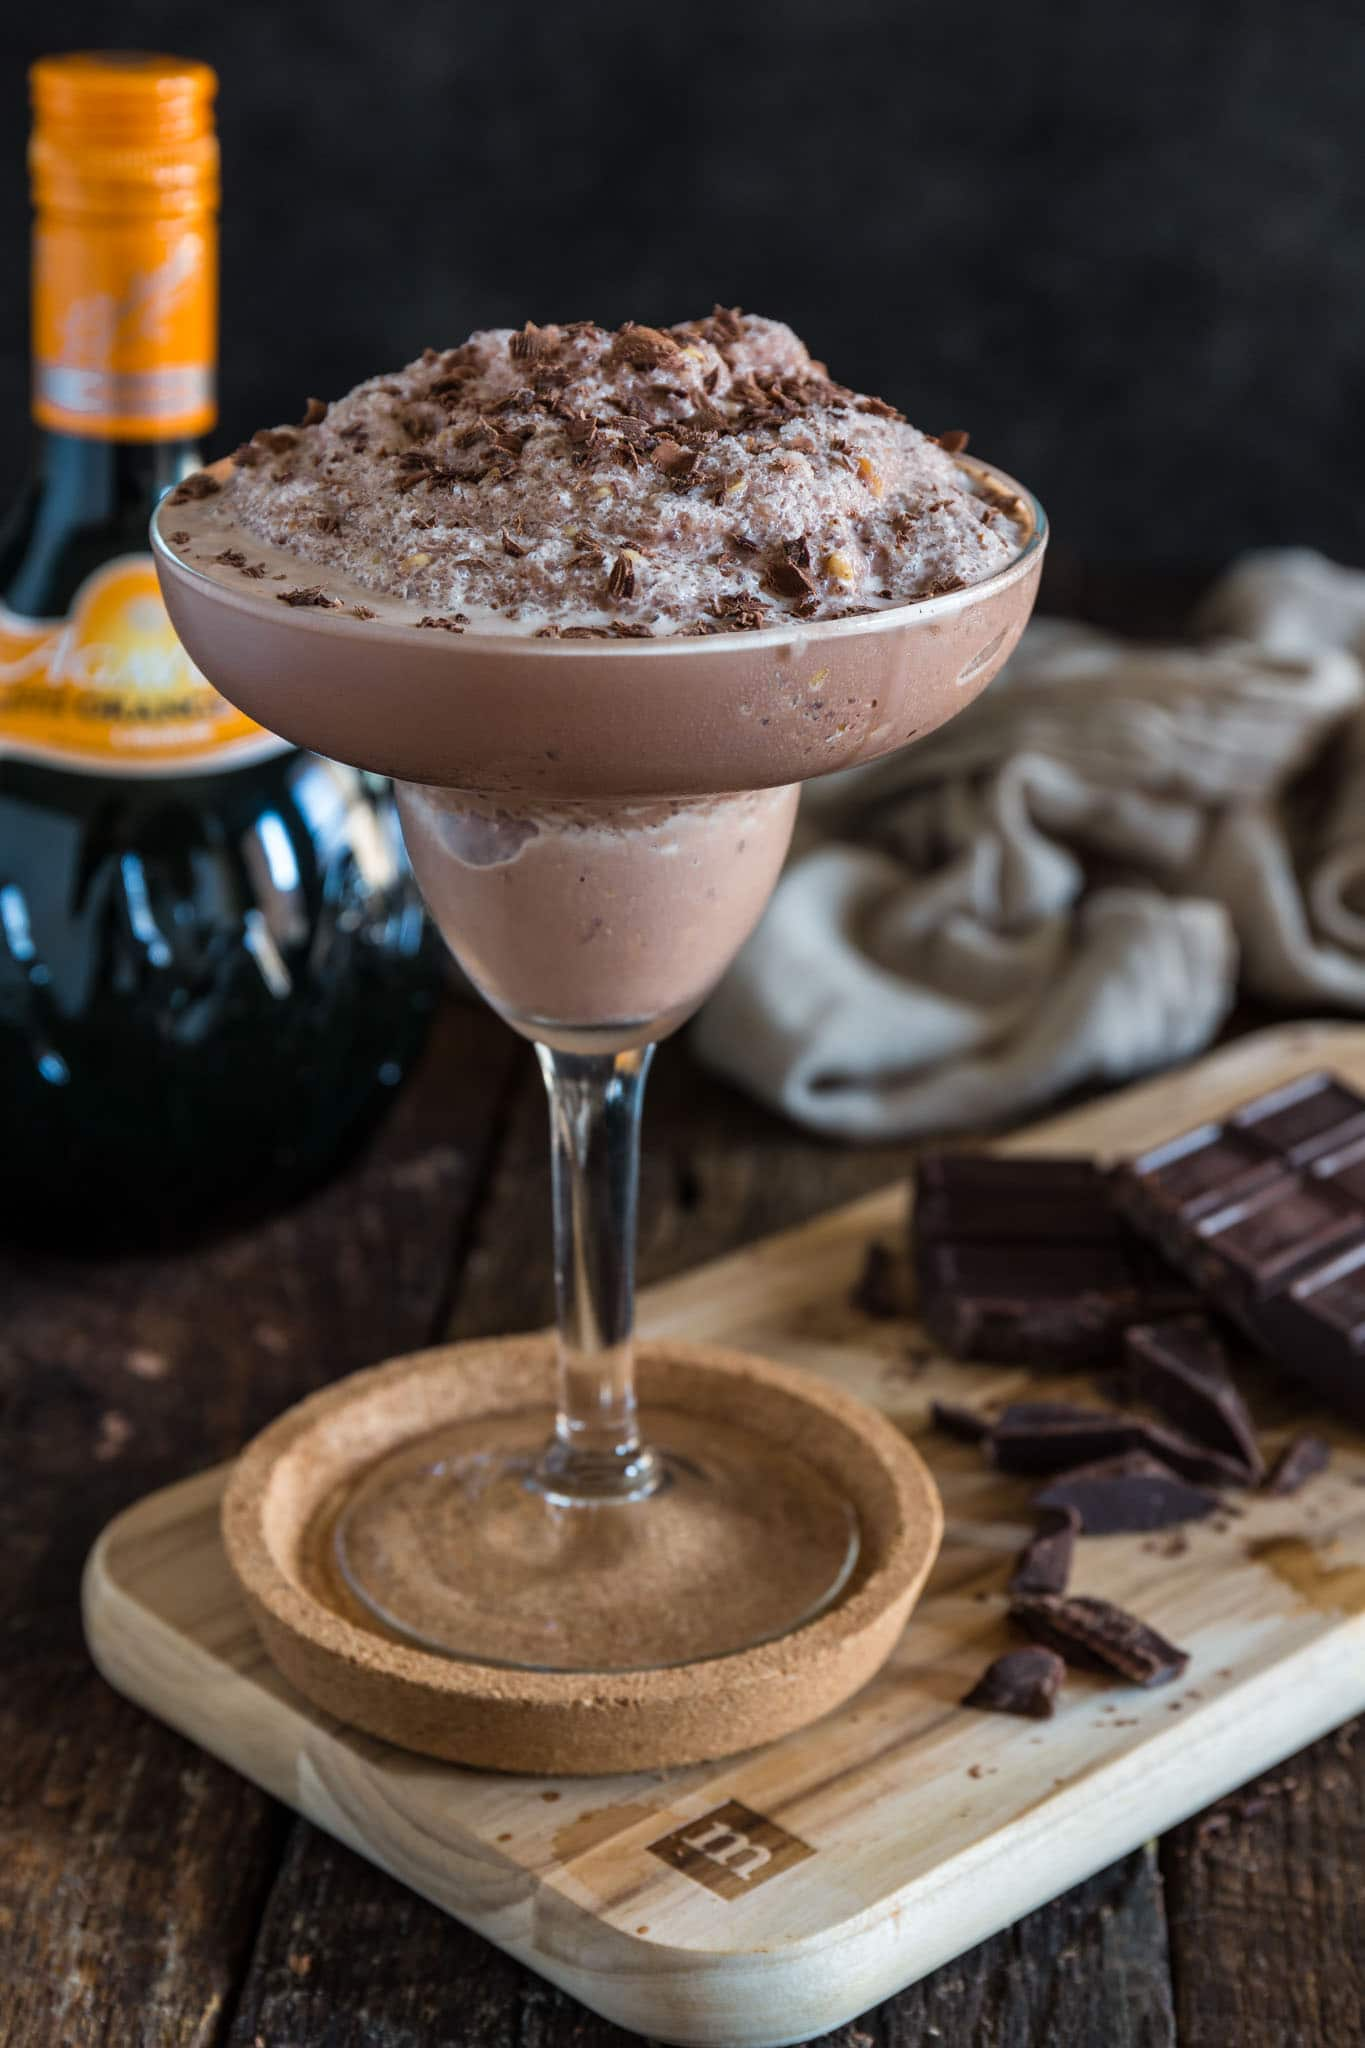 Frozen Chocolate Margarita | www.oliviascuisine.com | What's better than a frozen Margarita? A CHOCOLATE Margarita, of course! Made with chocolate ice cream, tequila and Agavero orange liqueur. (Recipe and food photography by @oliviascuisine.)